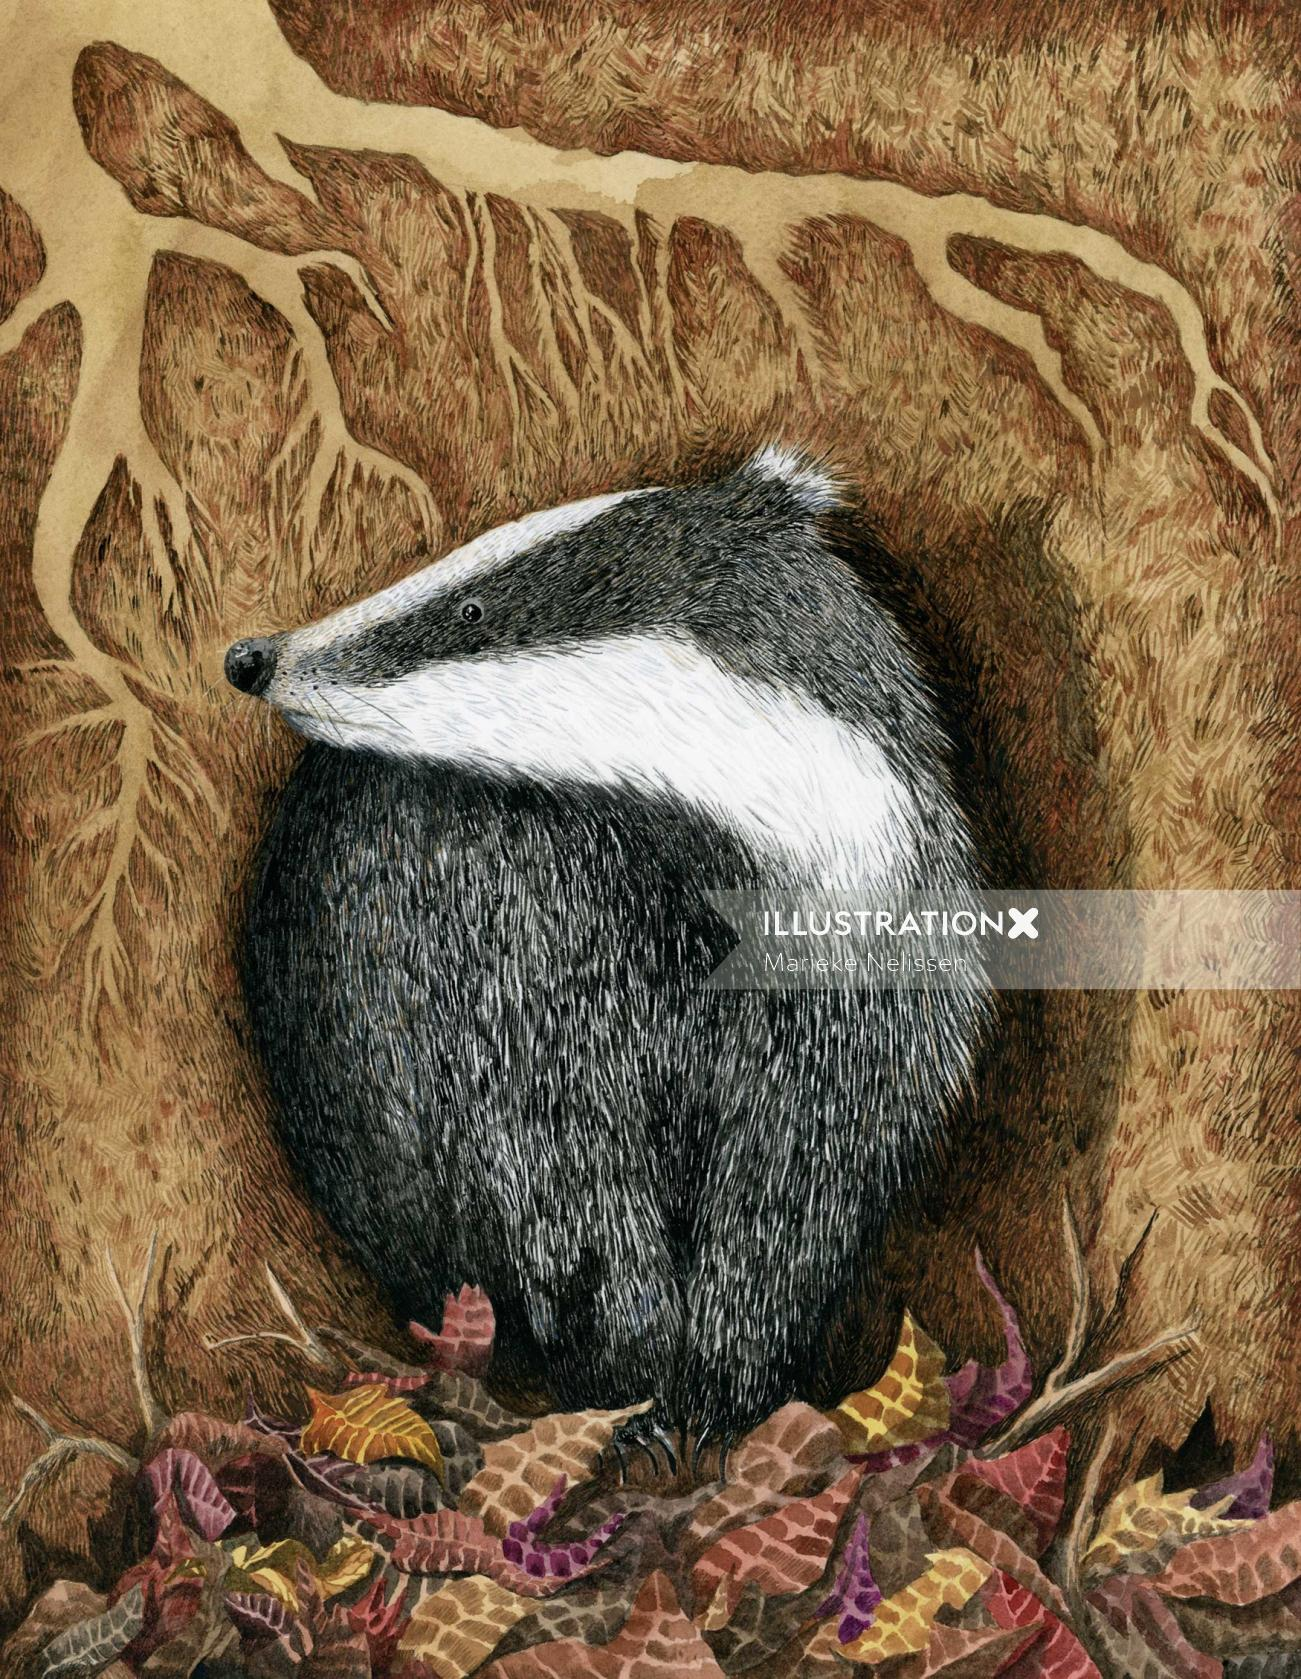 Badger illustration on paper by Marieke Nelissen